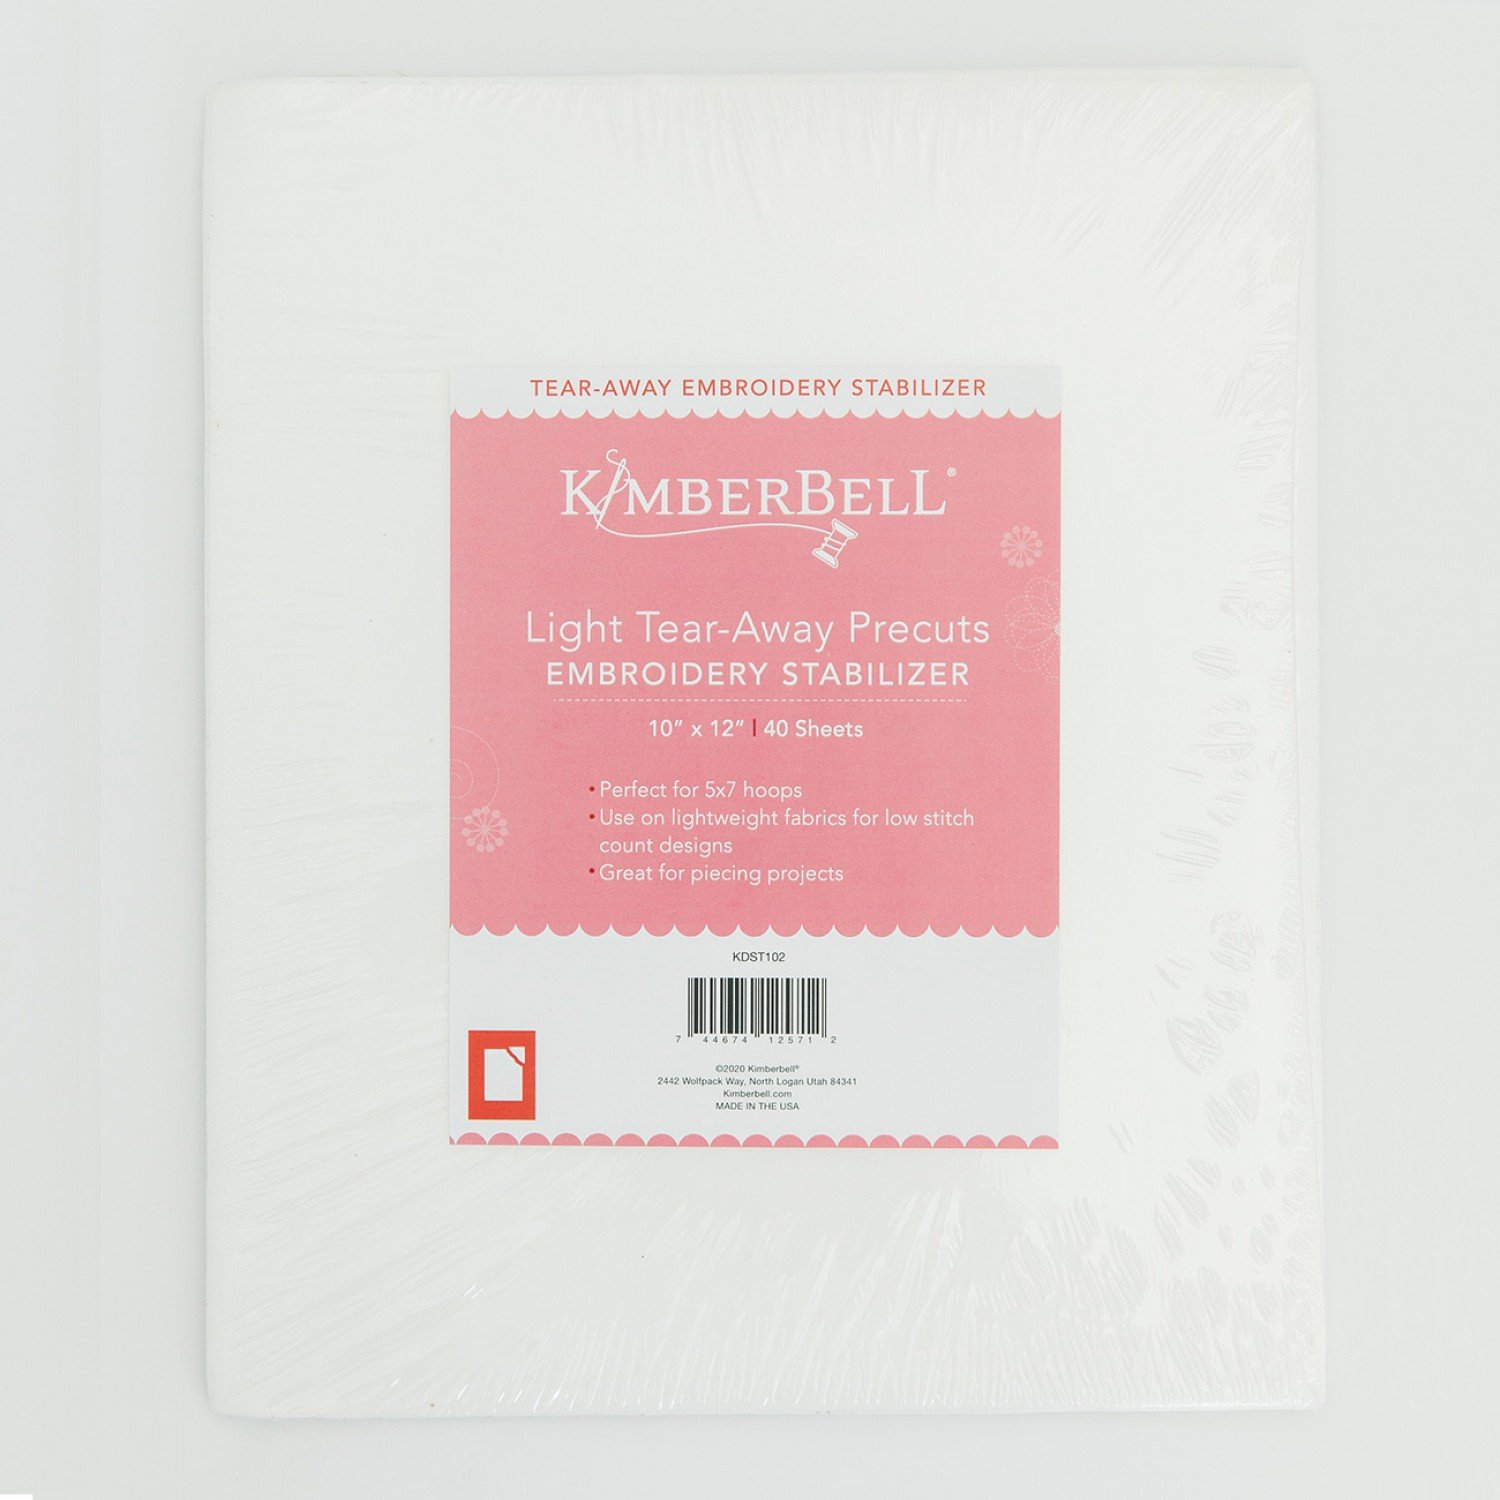 Kimberbell Light Tear-Away Precuts Embroidery Stabilizer 10 x 12  40 sheets KDST102